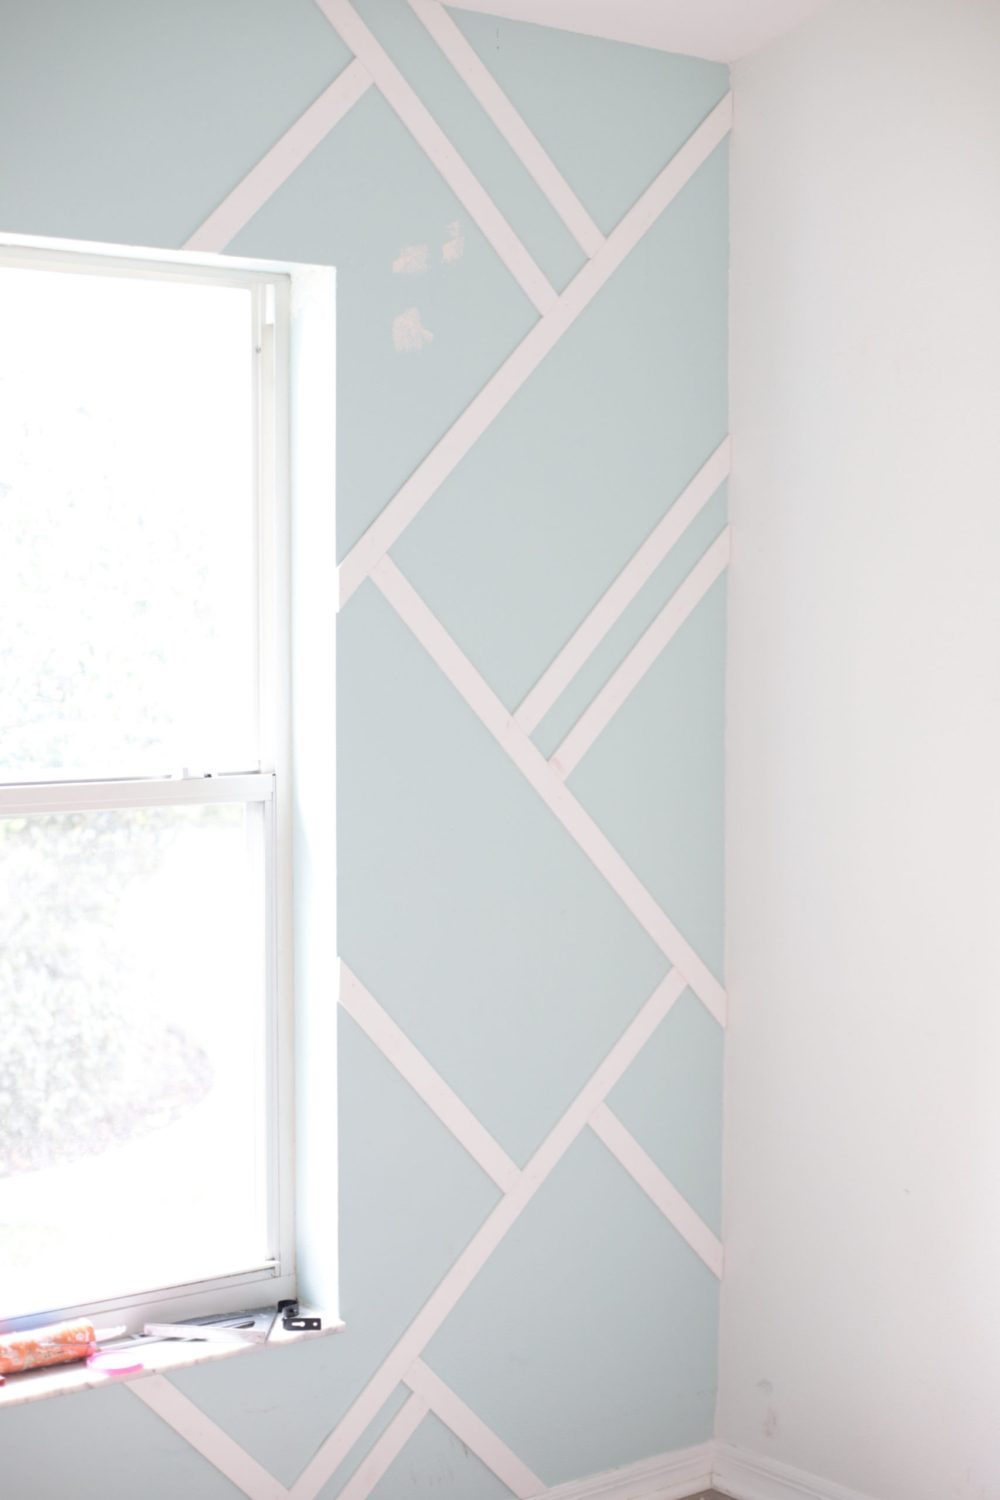 Gorgeous Wood Feature Wall + Shared Girl's Room Update by popular Florida home decor blog, Fresh Mommy Blog: before image of a man installing a wood accent wall in a shared girls' room.